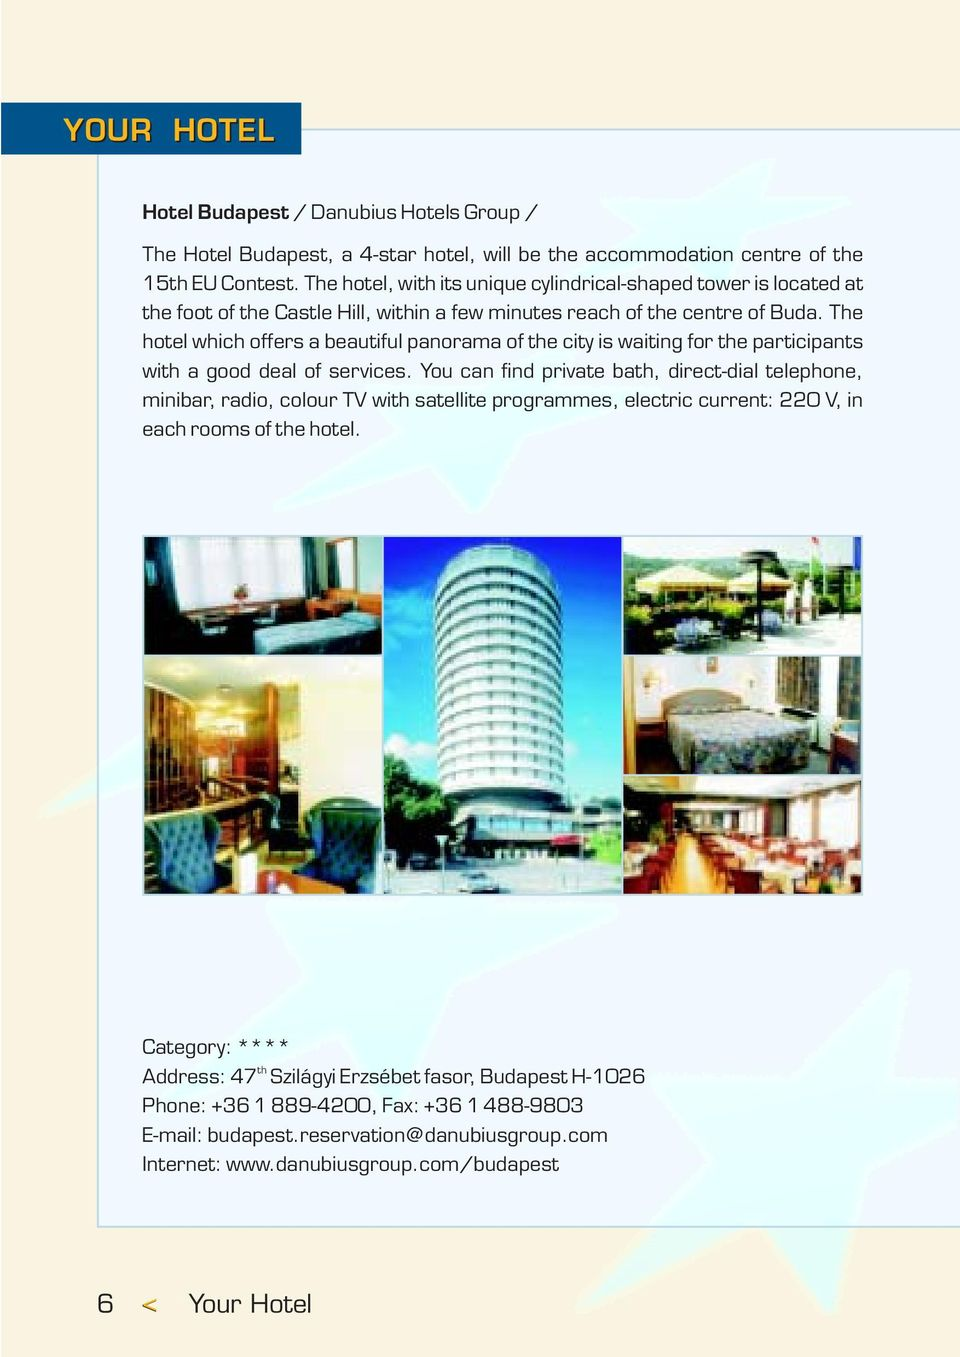 The hotel which offers a beautiful panorama of the city is waiting for the participants with a good deal of services.